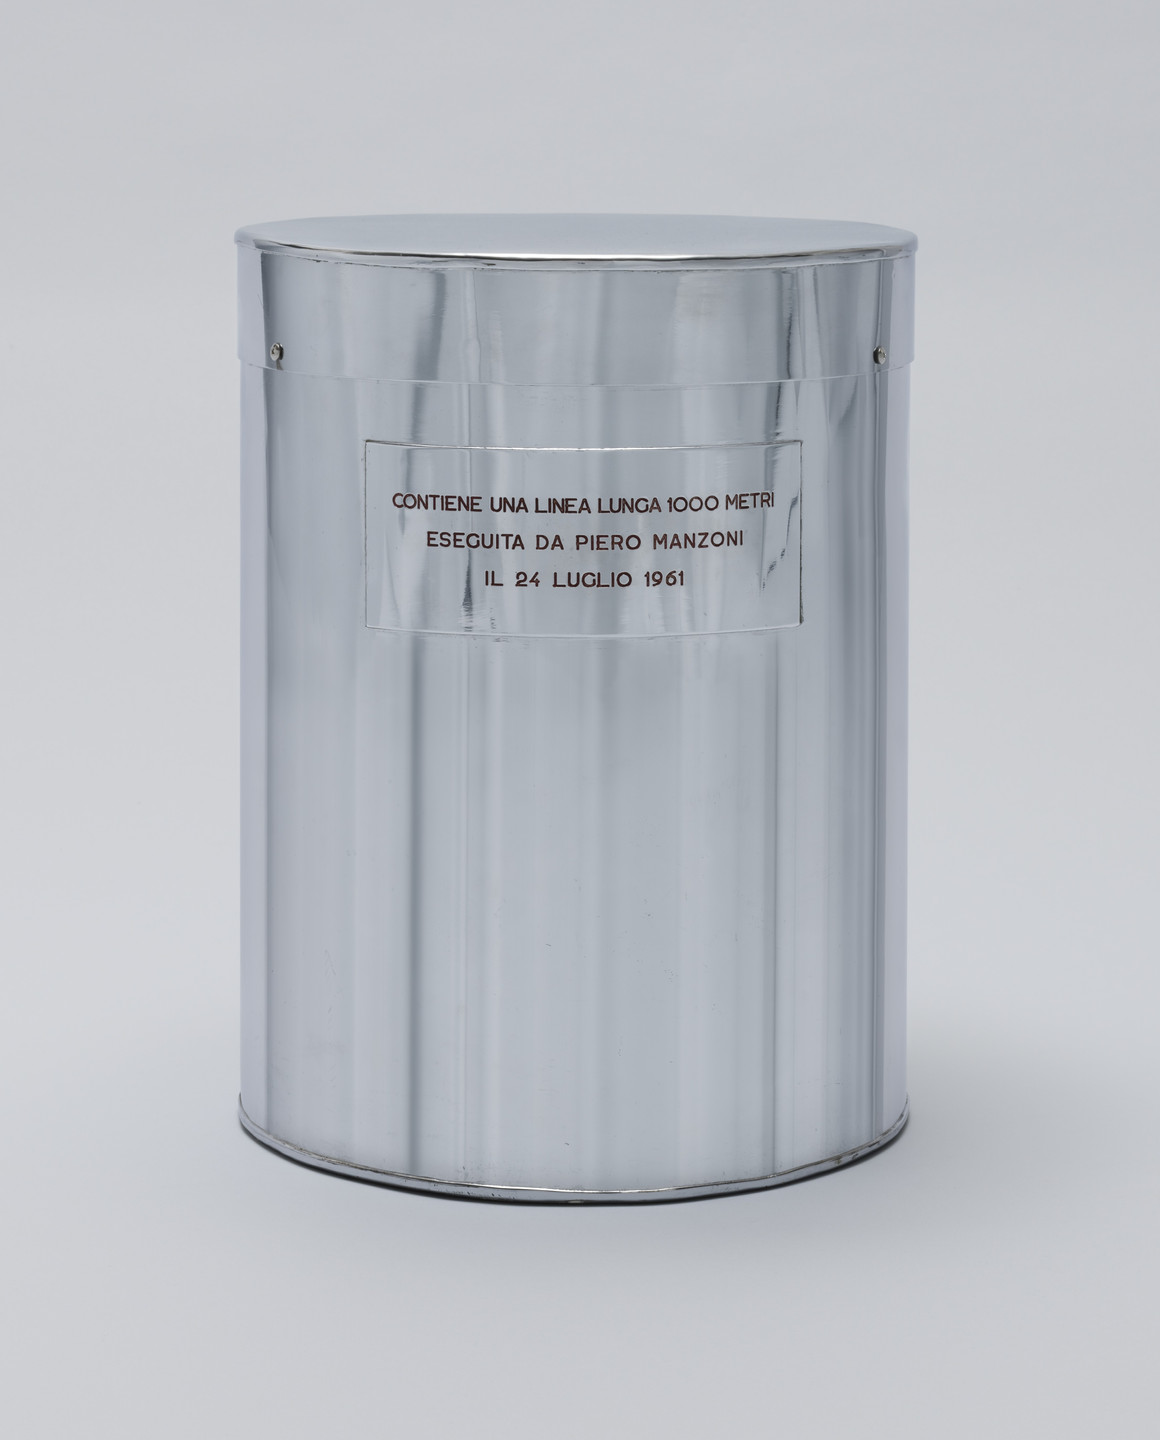 Piero Manzoni. Line 1000 Meters Long. July 24, 1961